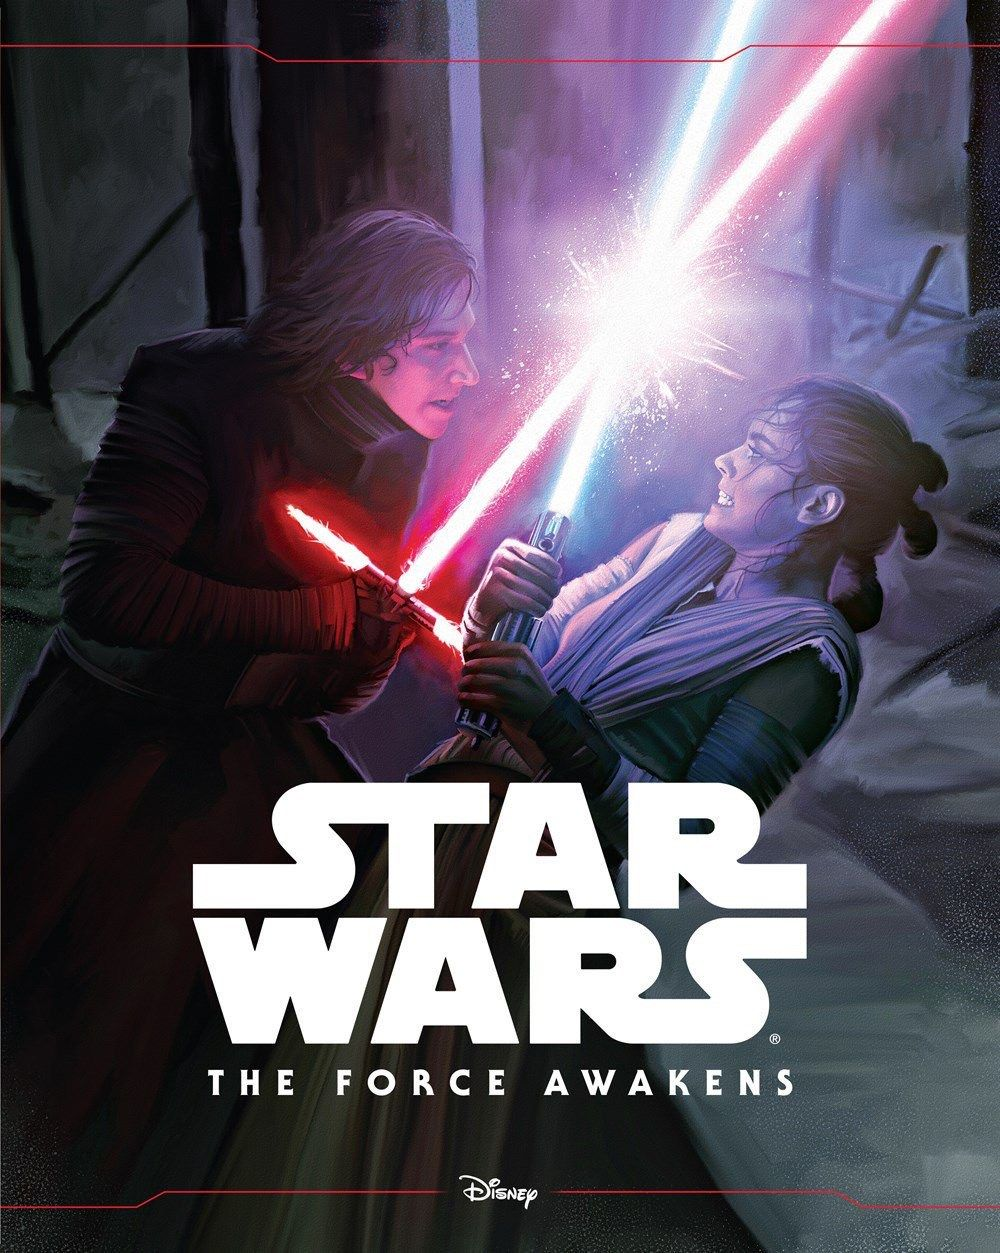 New Star Wars The Force Awakens Book Features Rey And Kylo Ren